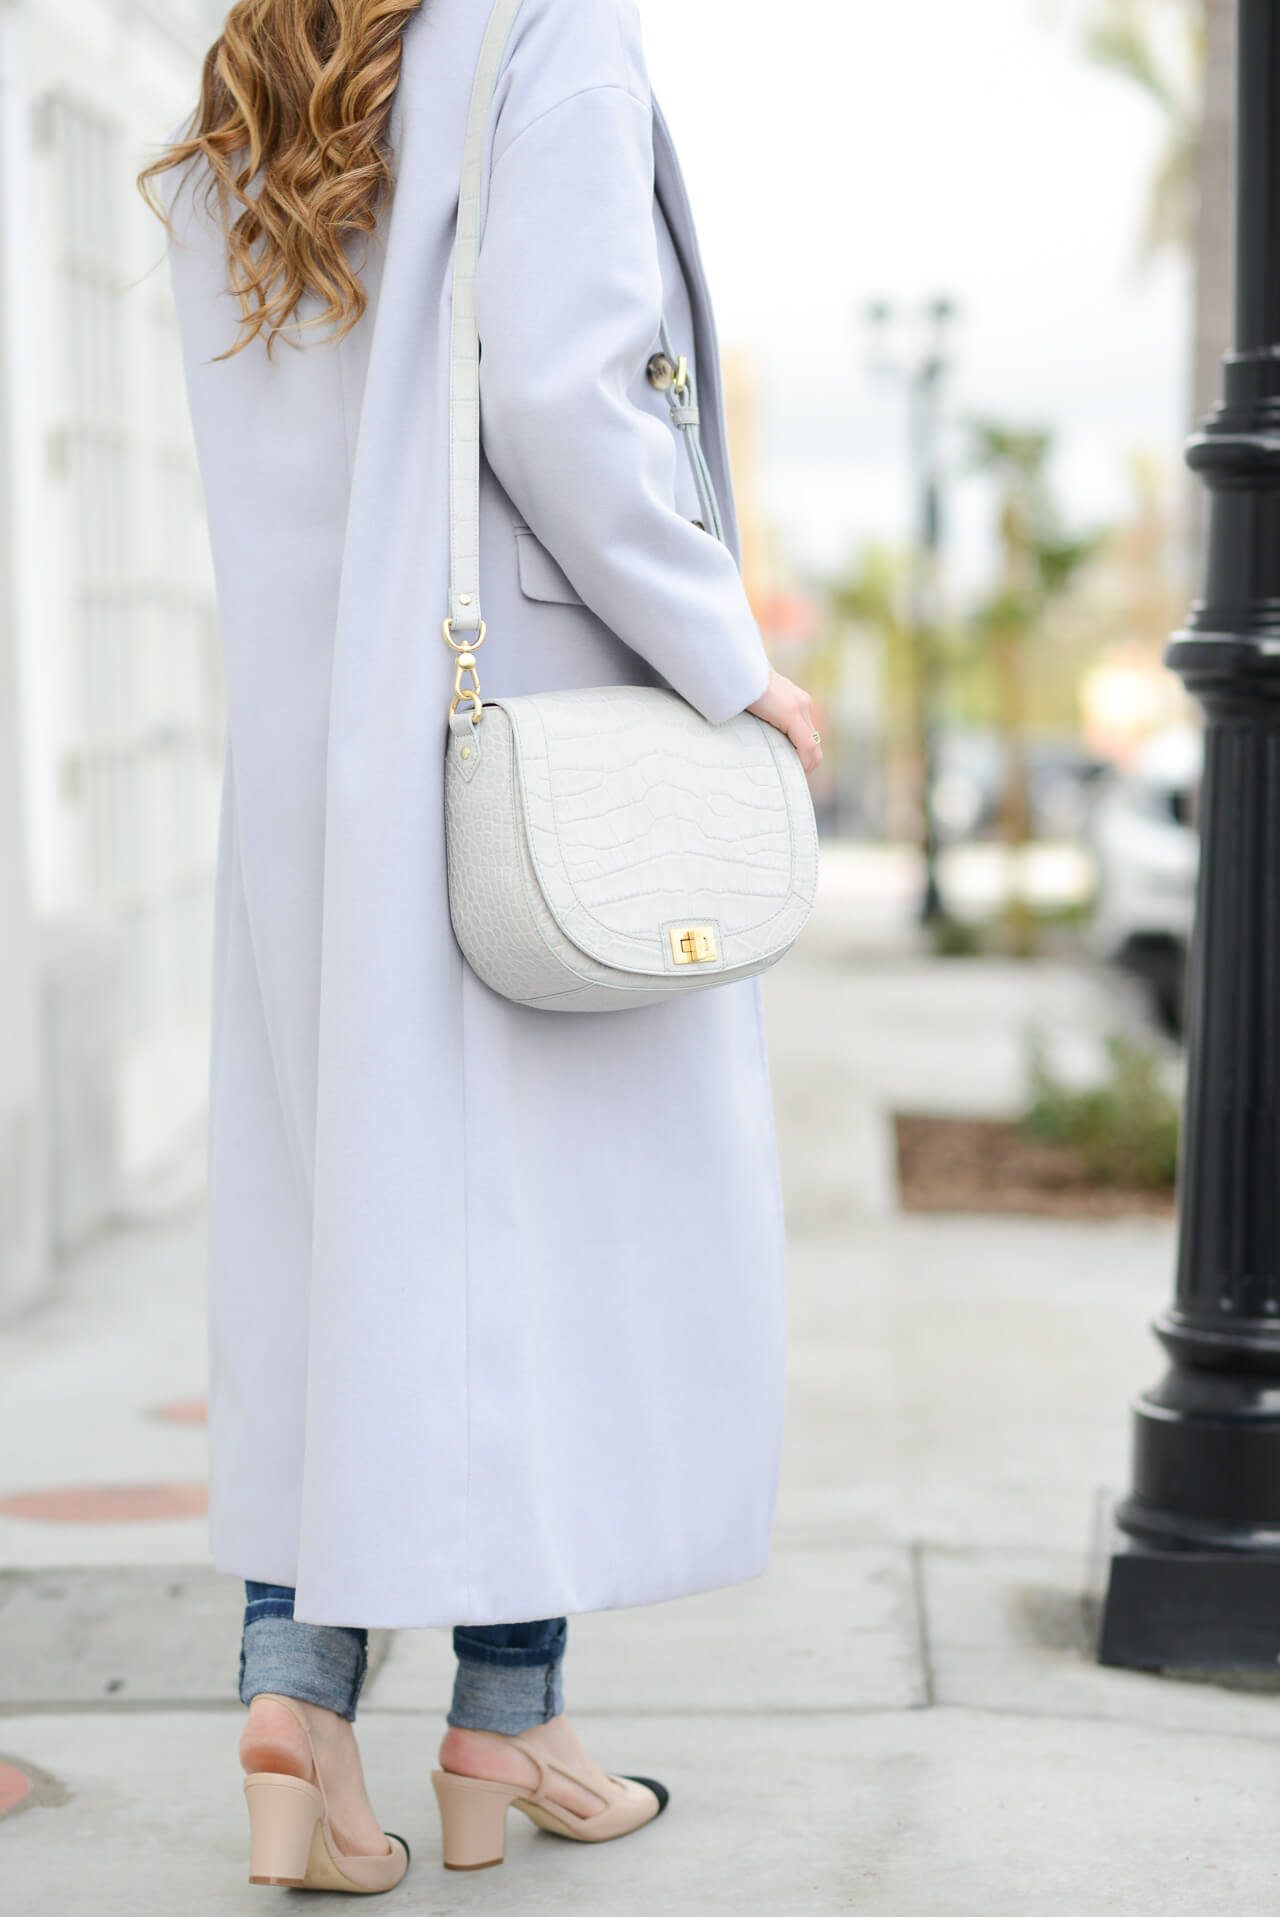 long lavender winter coat with brahmin sonny bag